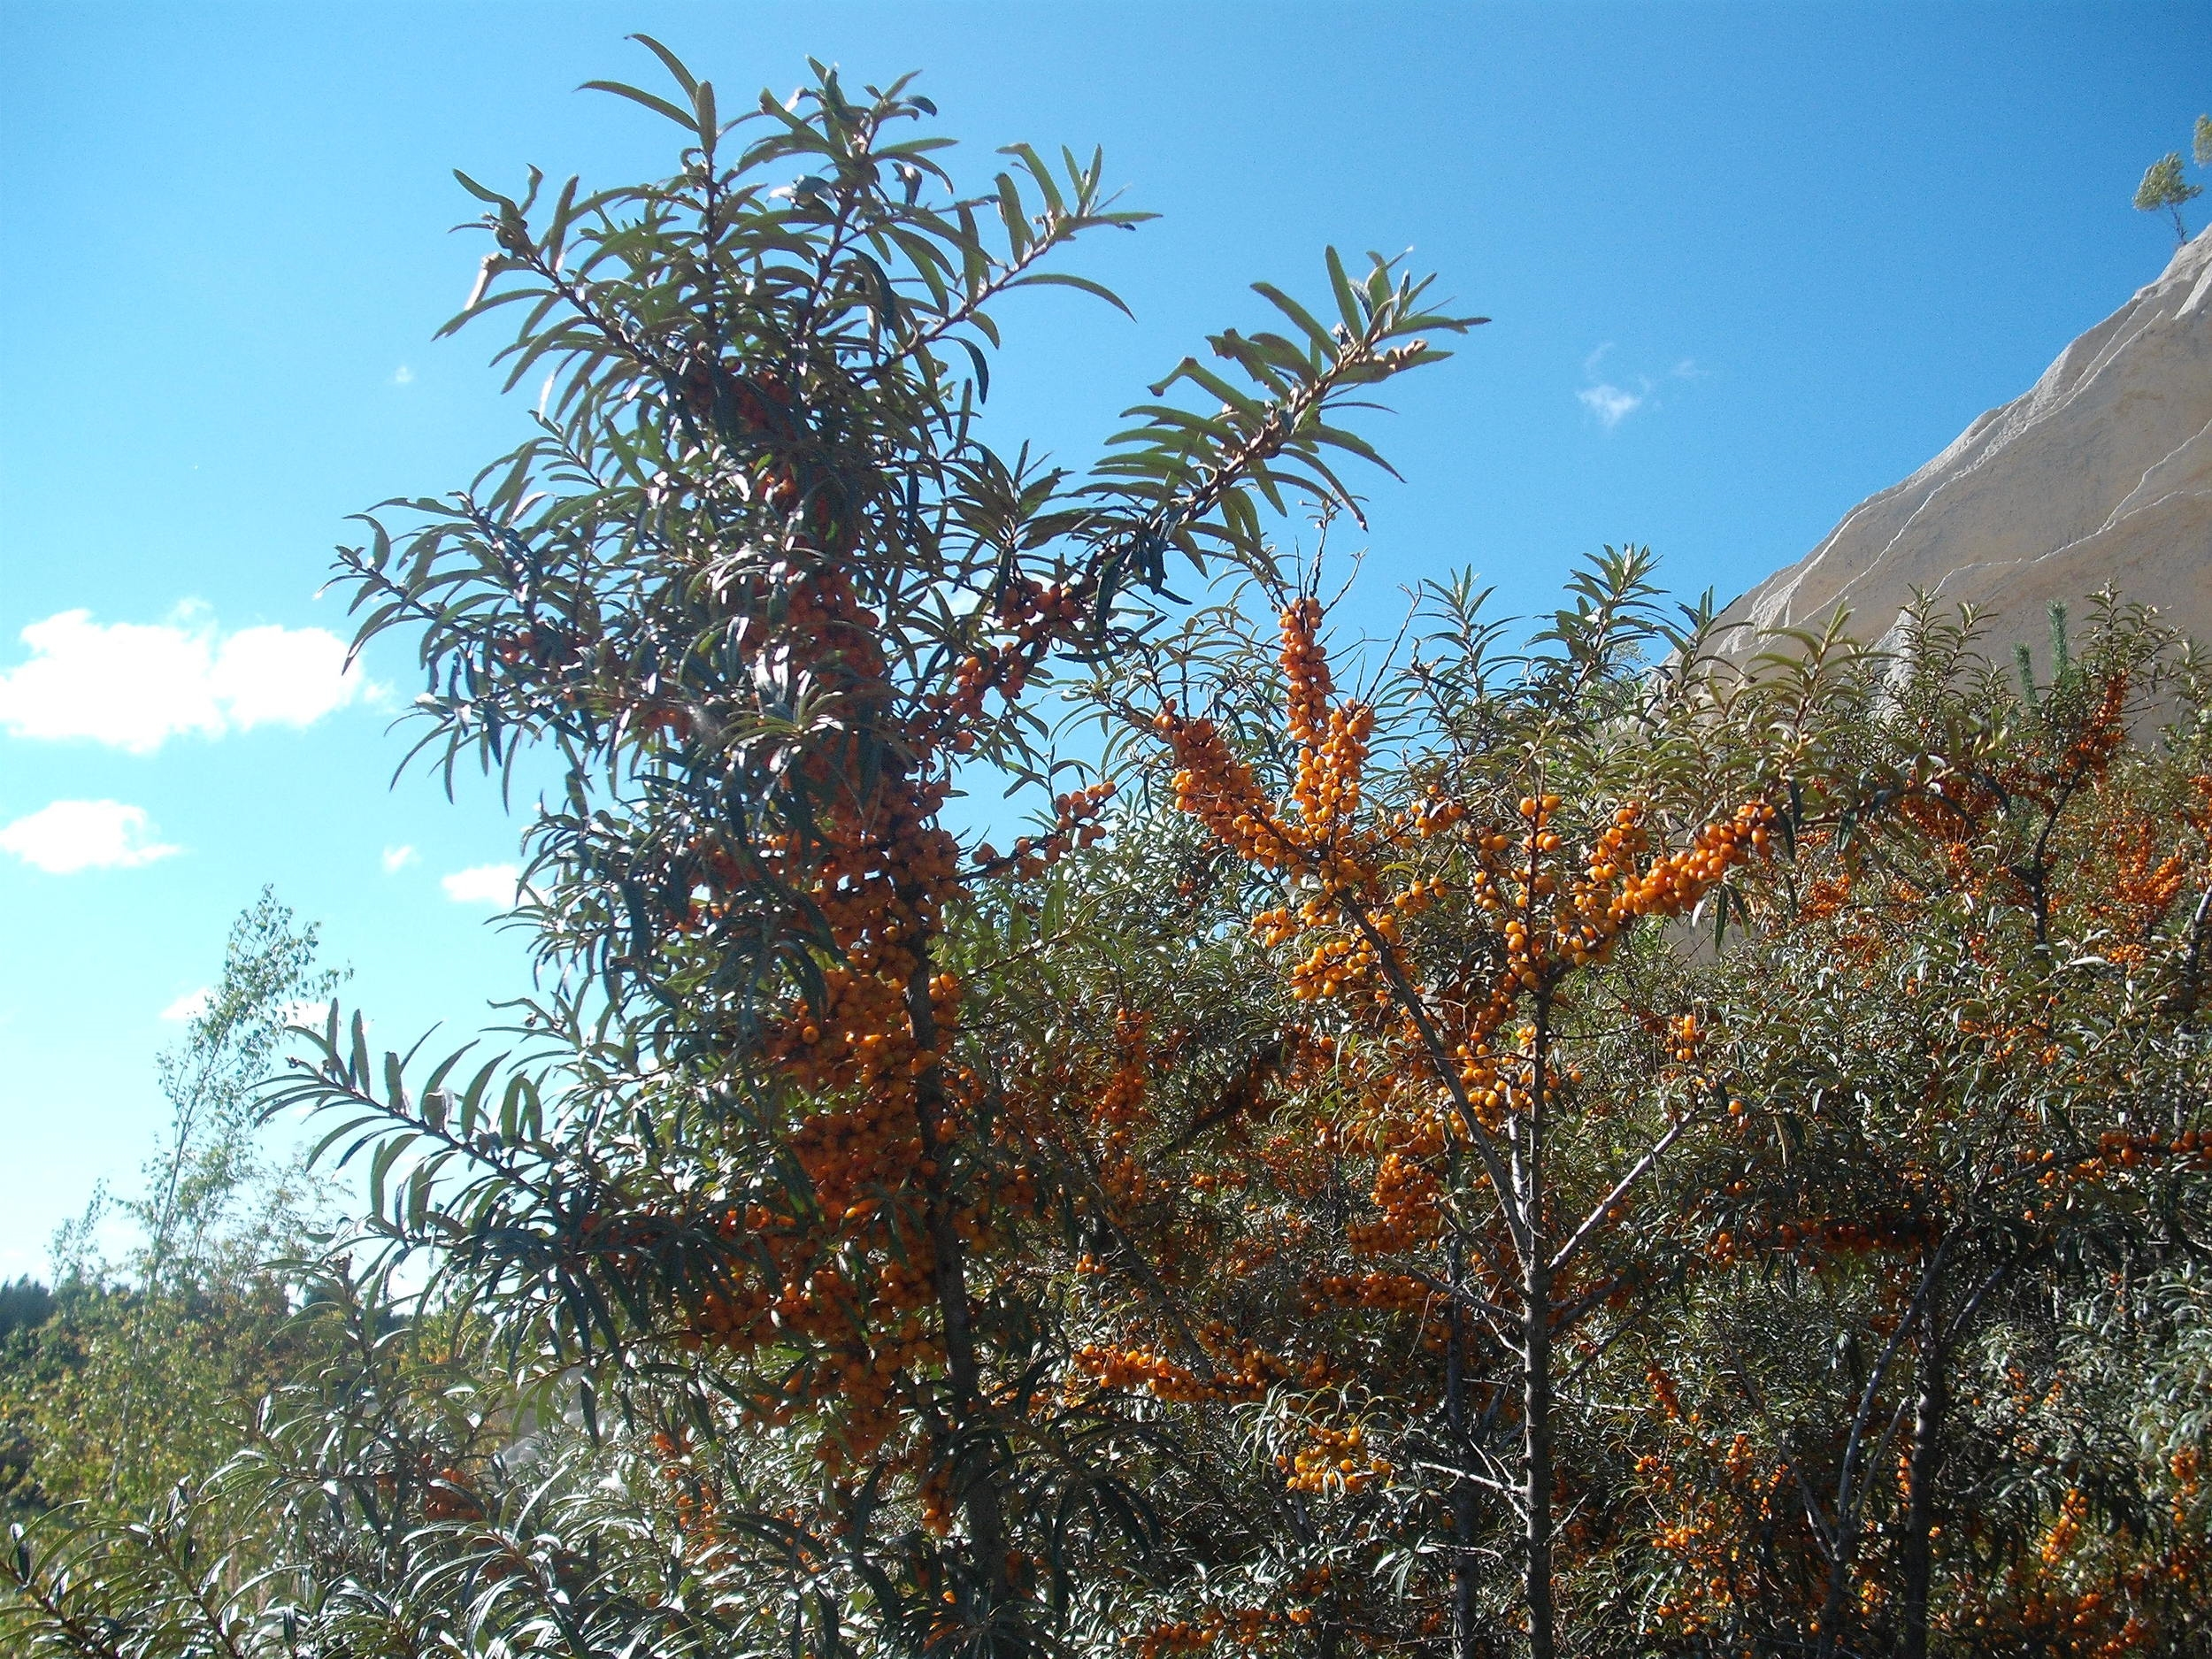 Sea buckthorn, pictured on my second visit, in August 2015